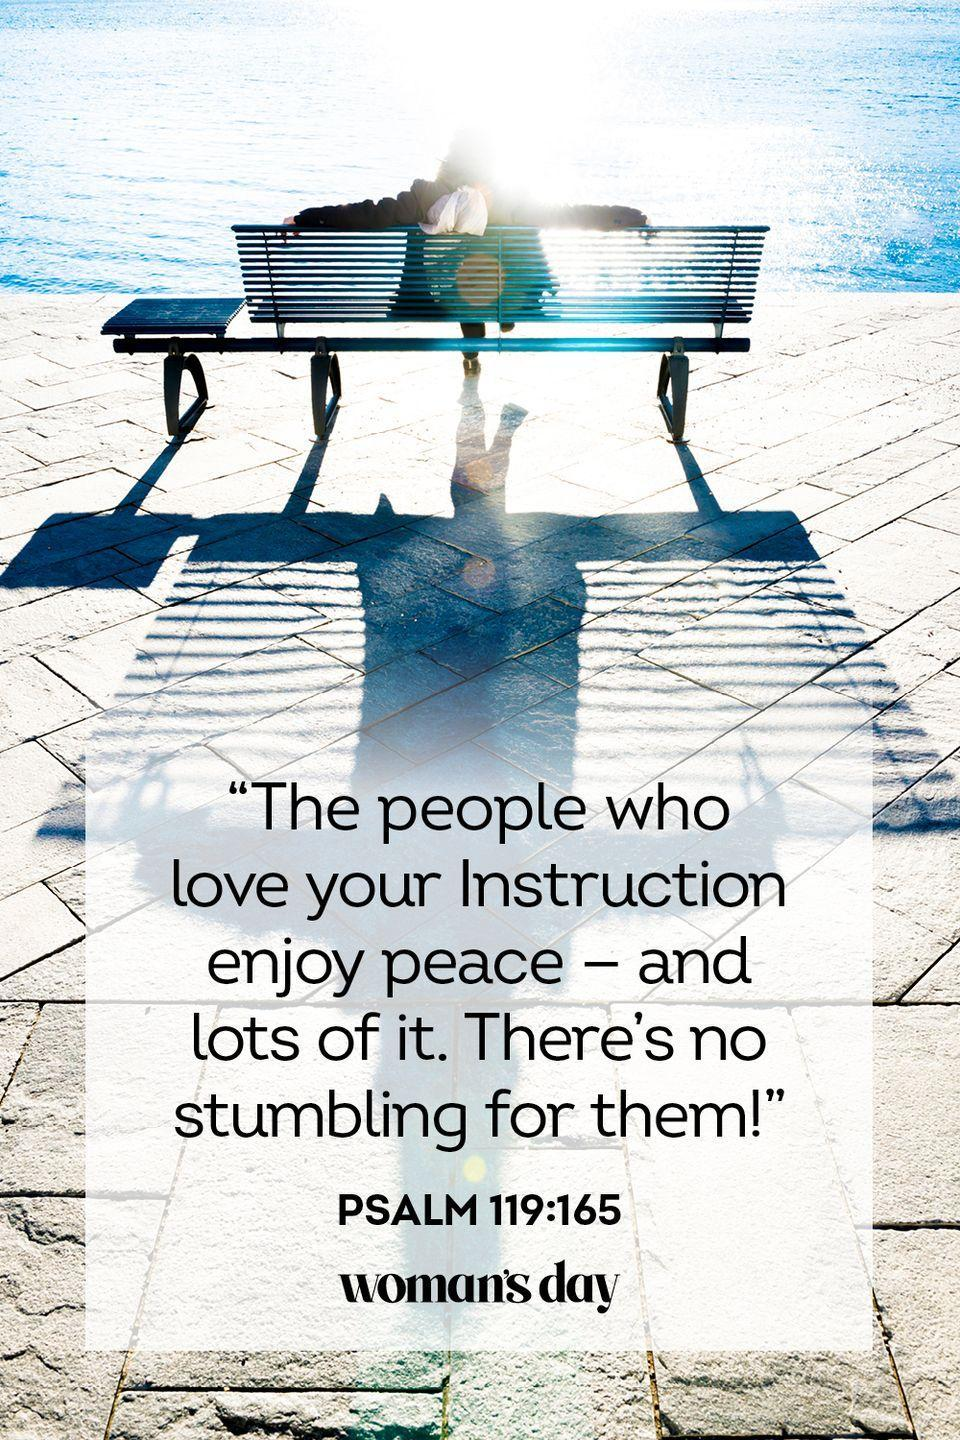 """<p>""""The people who love your Instruction enjoy peace — and lots of it. There's no stumbling for them!"""" — Psalm 119:165</p><p><strong>The Good News:</strong> If you follow the dictates of your faith with a steadfast heart, you will always feel your feet on solid ground.</p>"""